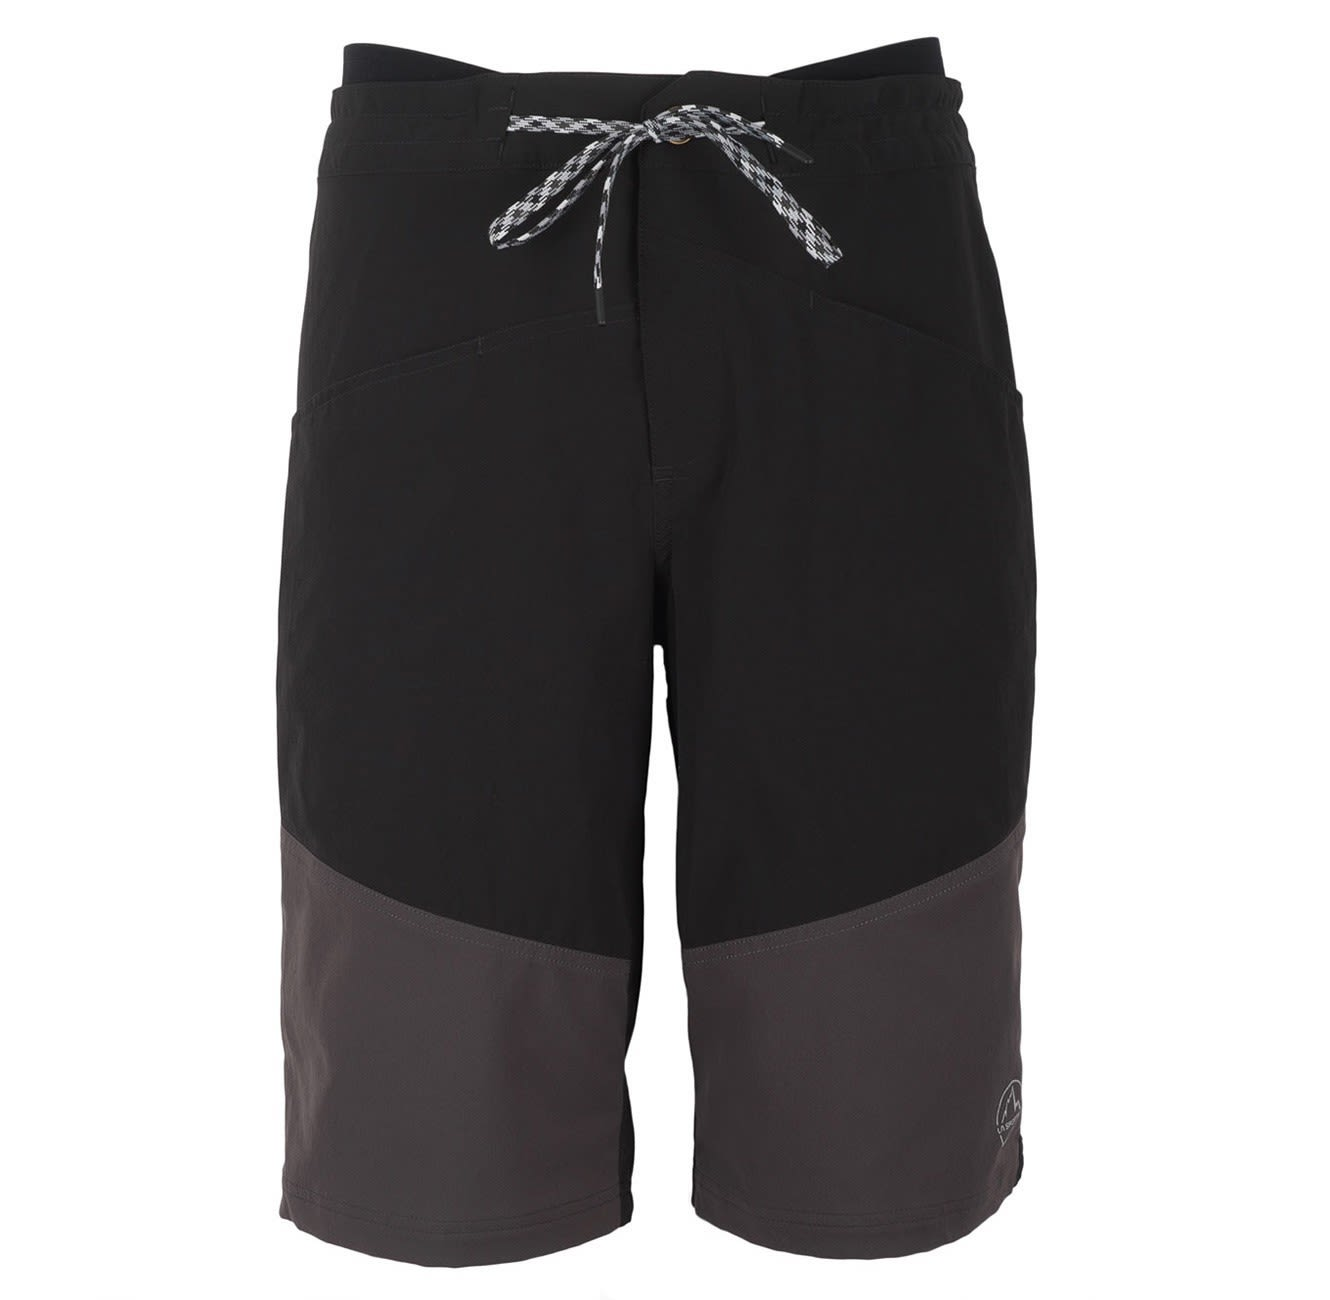 La Sportiva TX Short Schwarz, Male Shorts, XL